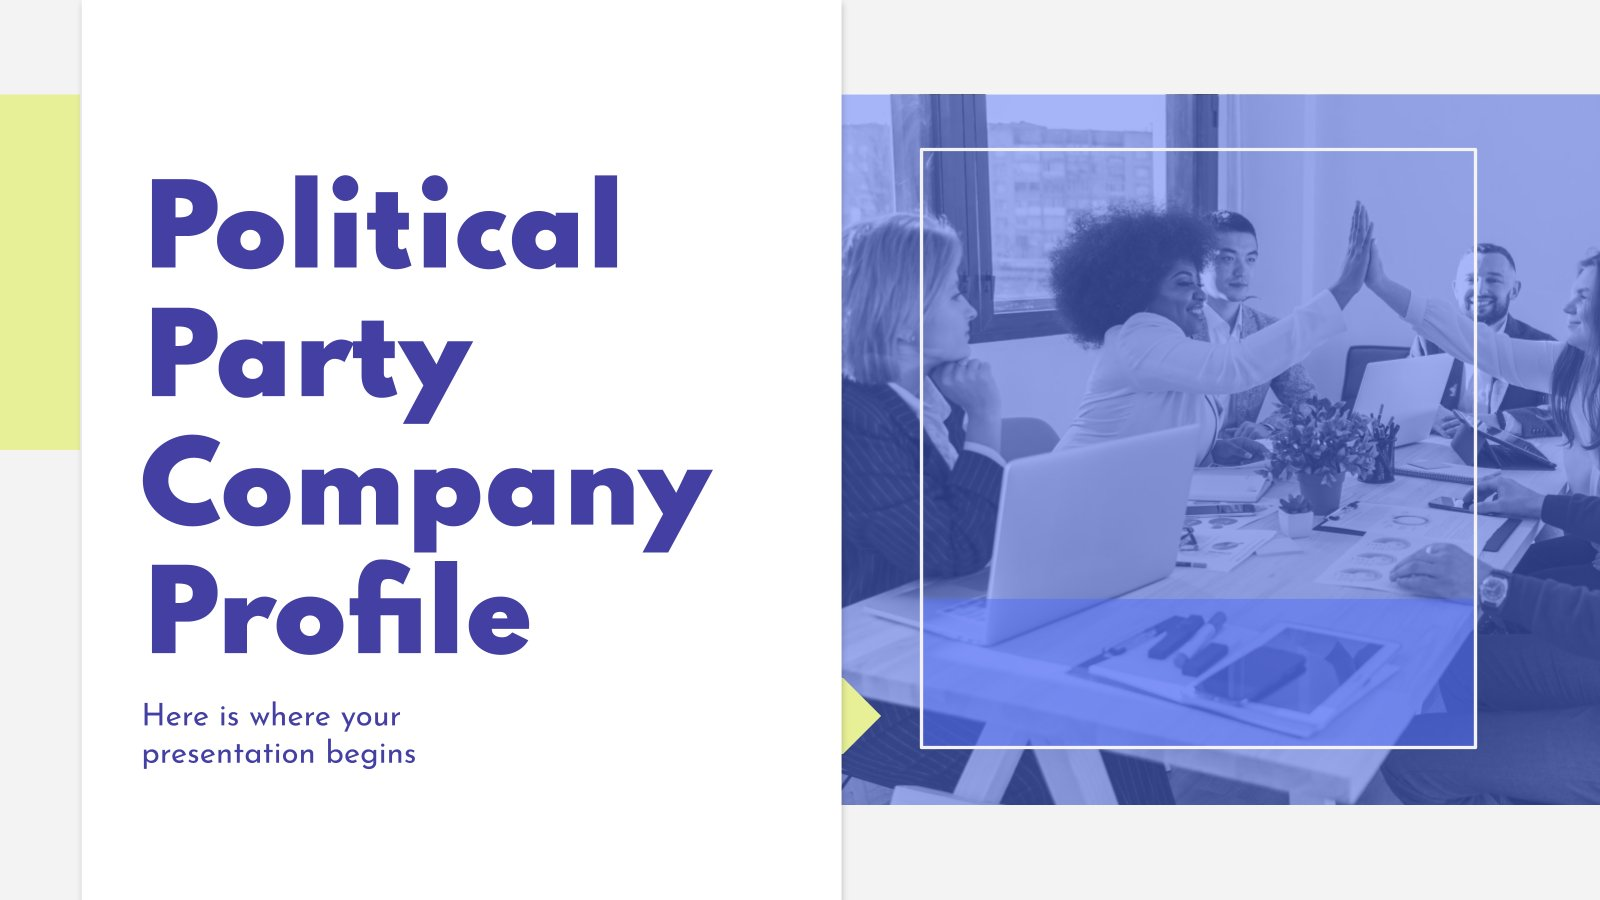 Political Party Company Profile presentation template